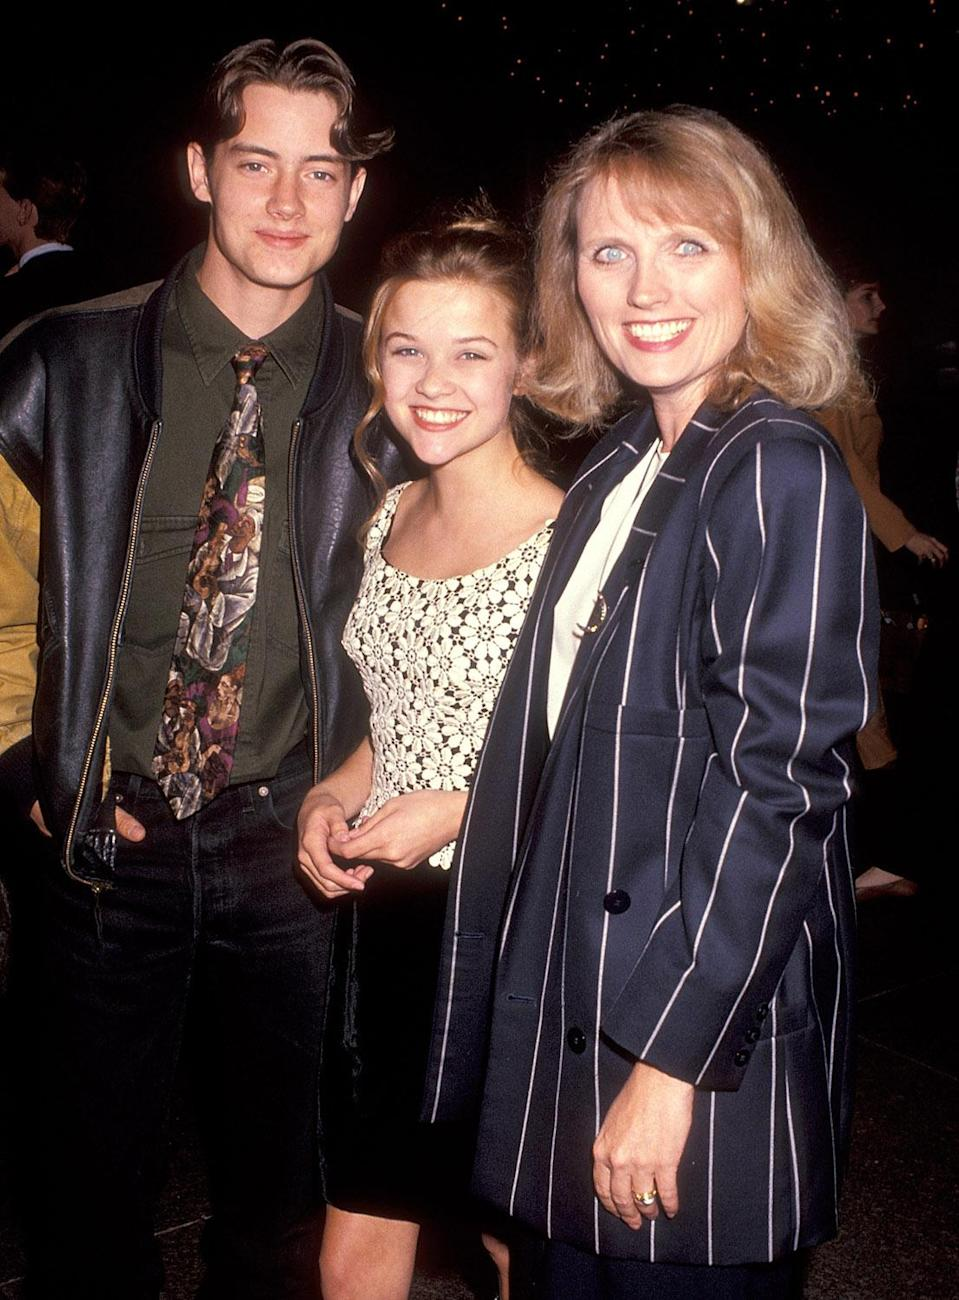 <p>Baby-faced, and just 15, Reese posed with her co-stars Jeremy London and Tess Harper at the Hollywood premiere of her feature film debut, <em>The Man in the Moon.</em><br> (Photo: Getty Images) </p>